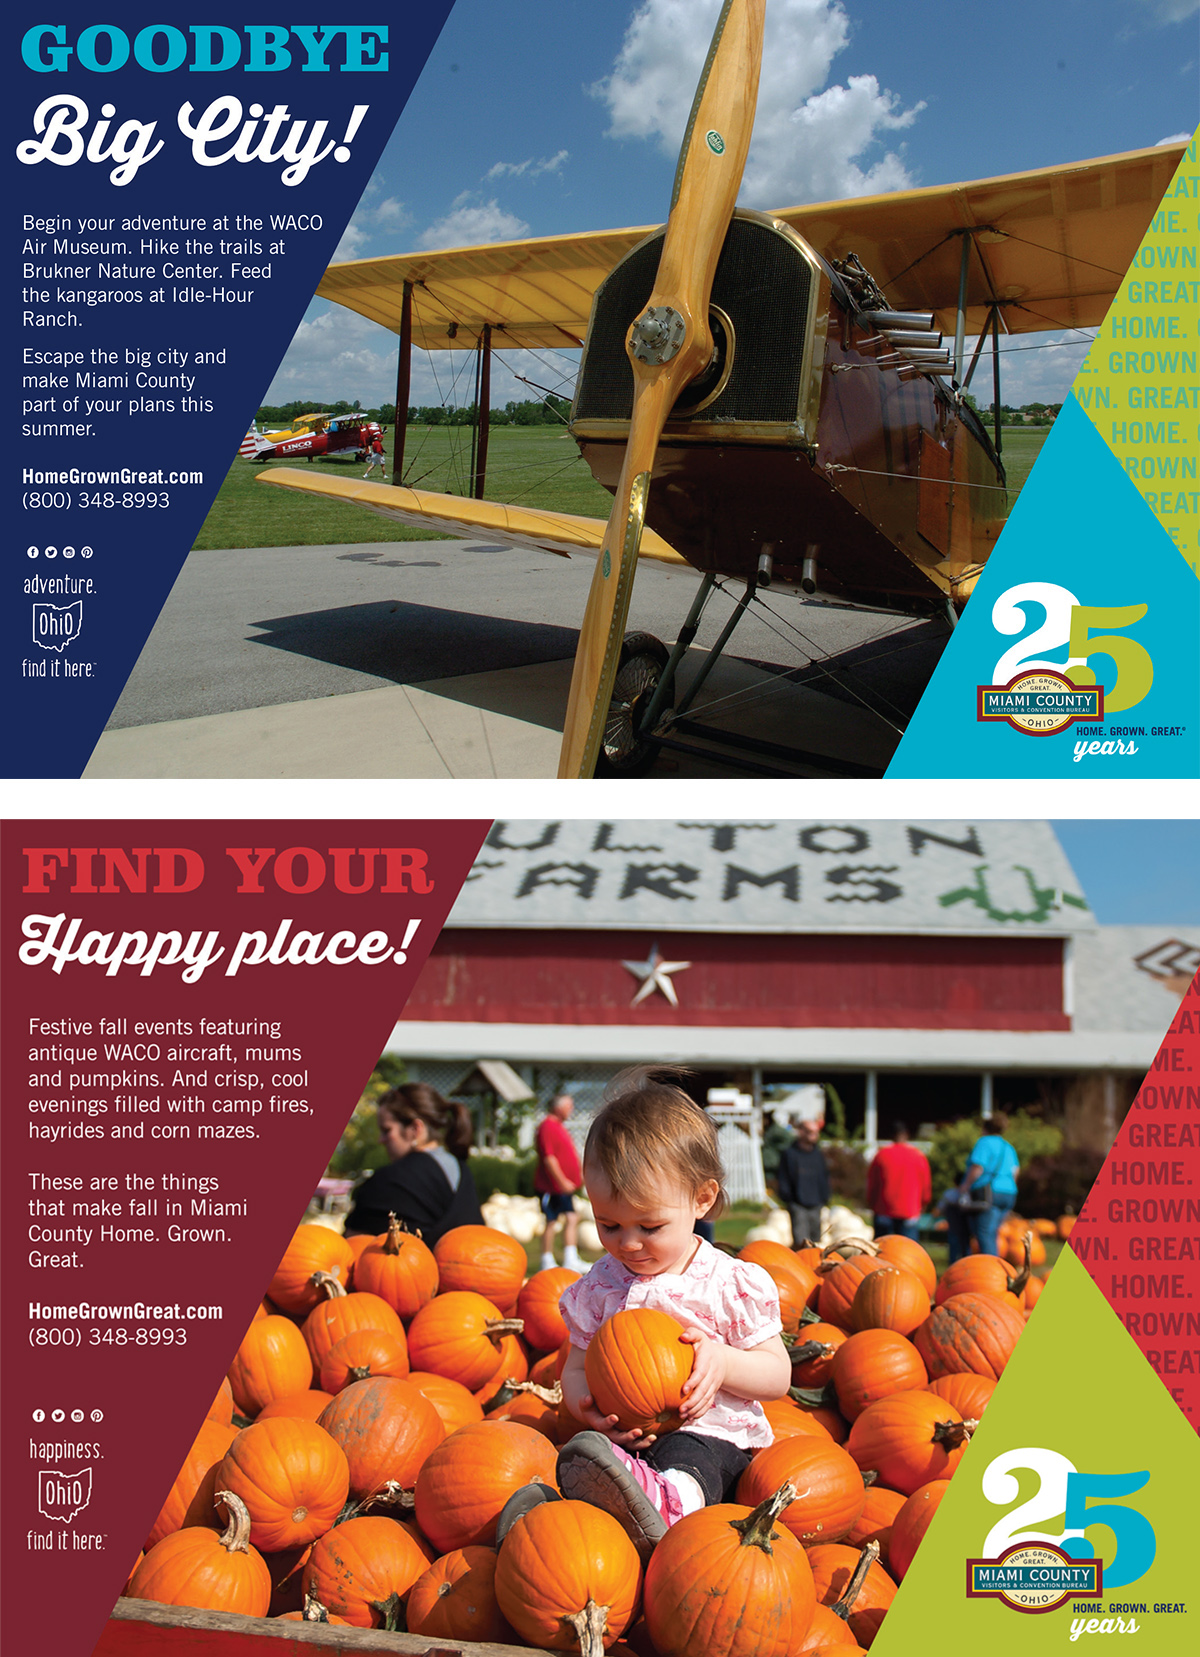 Miami County Visitors and Convention Bureau ad series